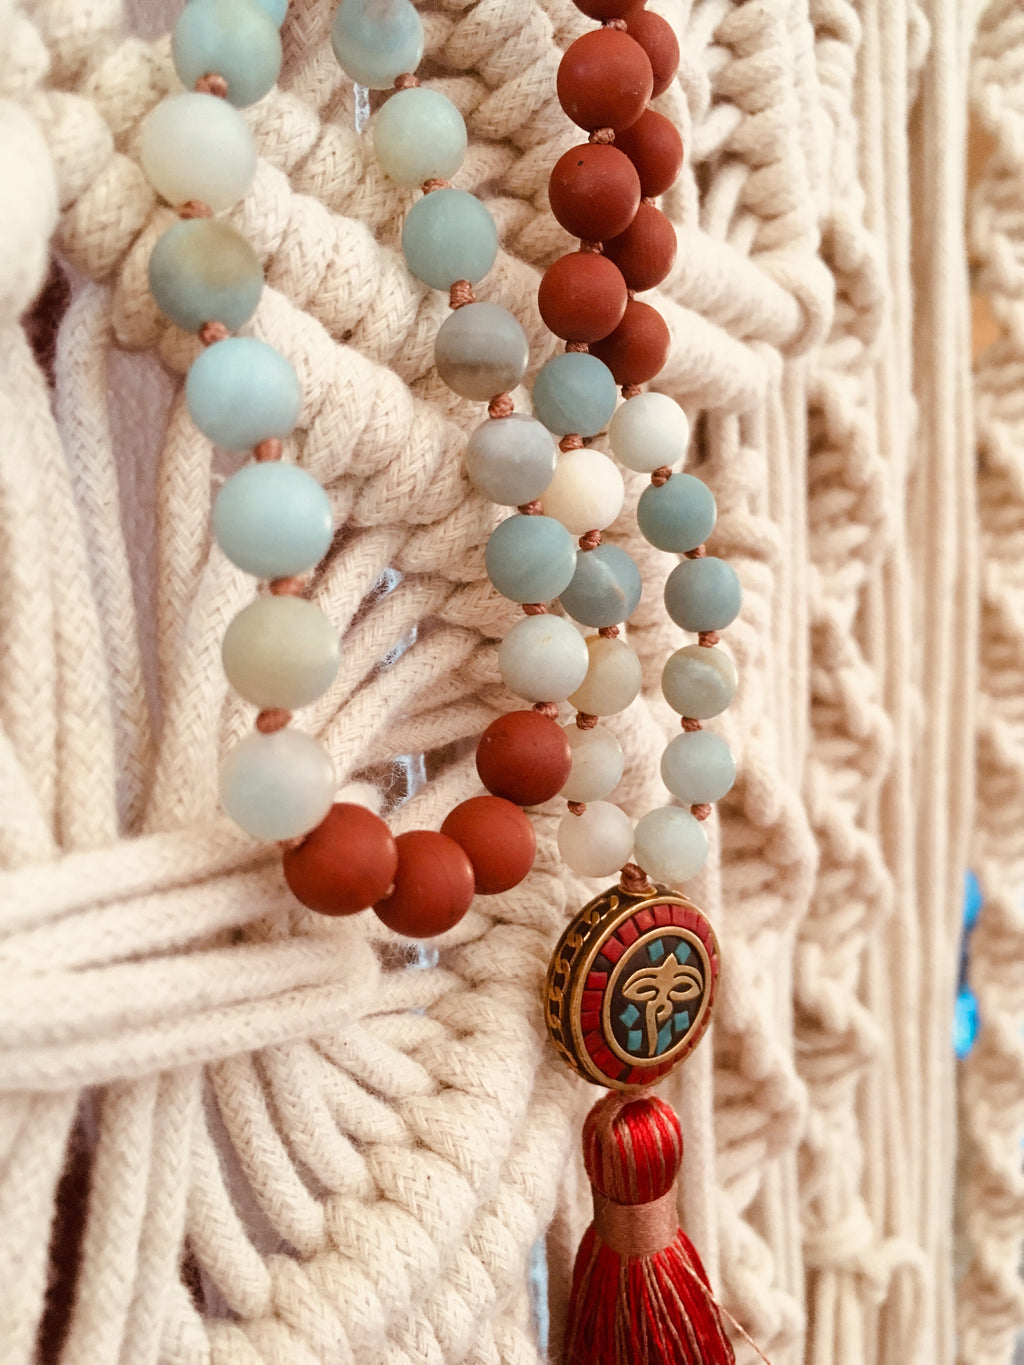 Matte Red Agate & Amazonite Stone with Nepal charm - Knotted Mala